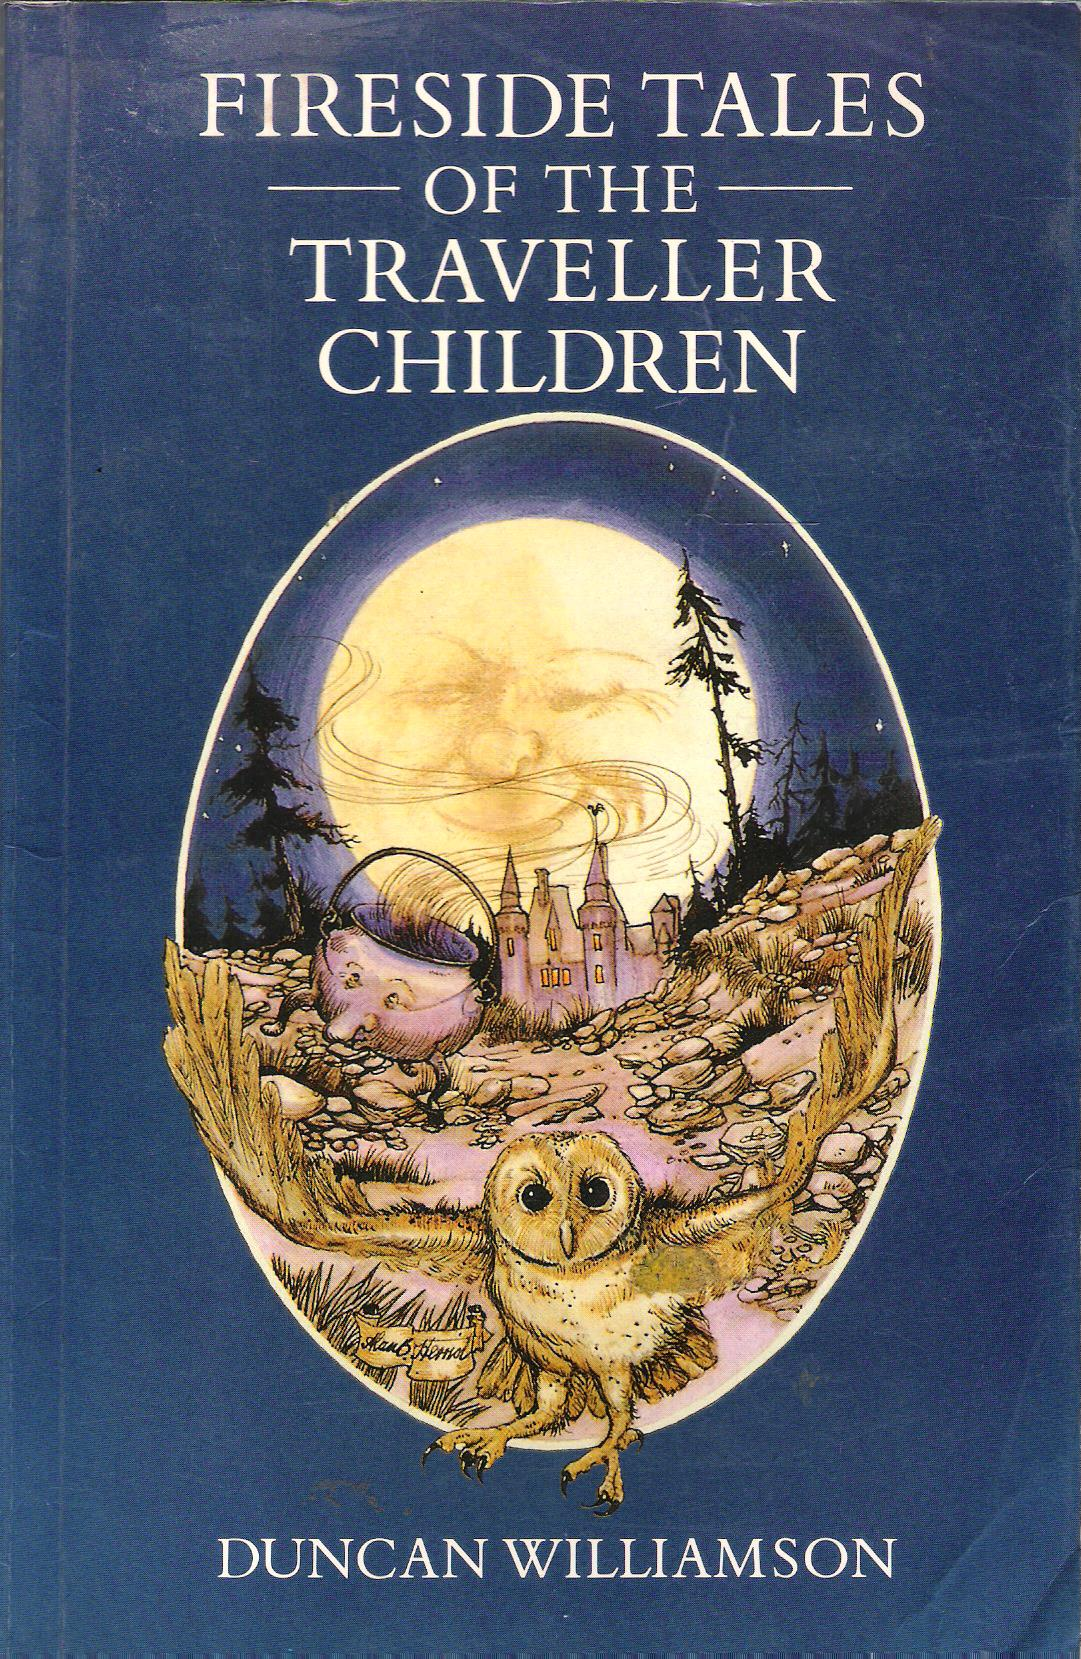 Image for Fireside Tales of the Traveller Children.